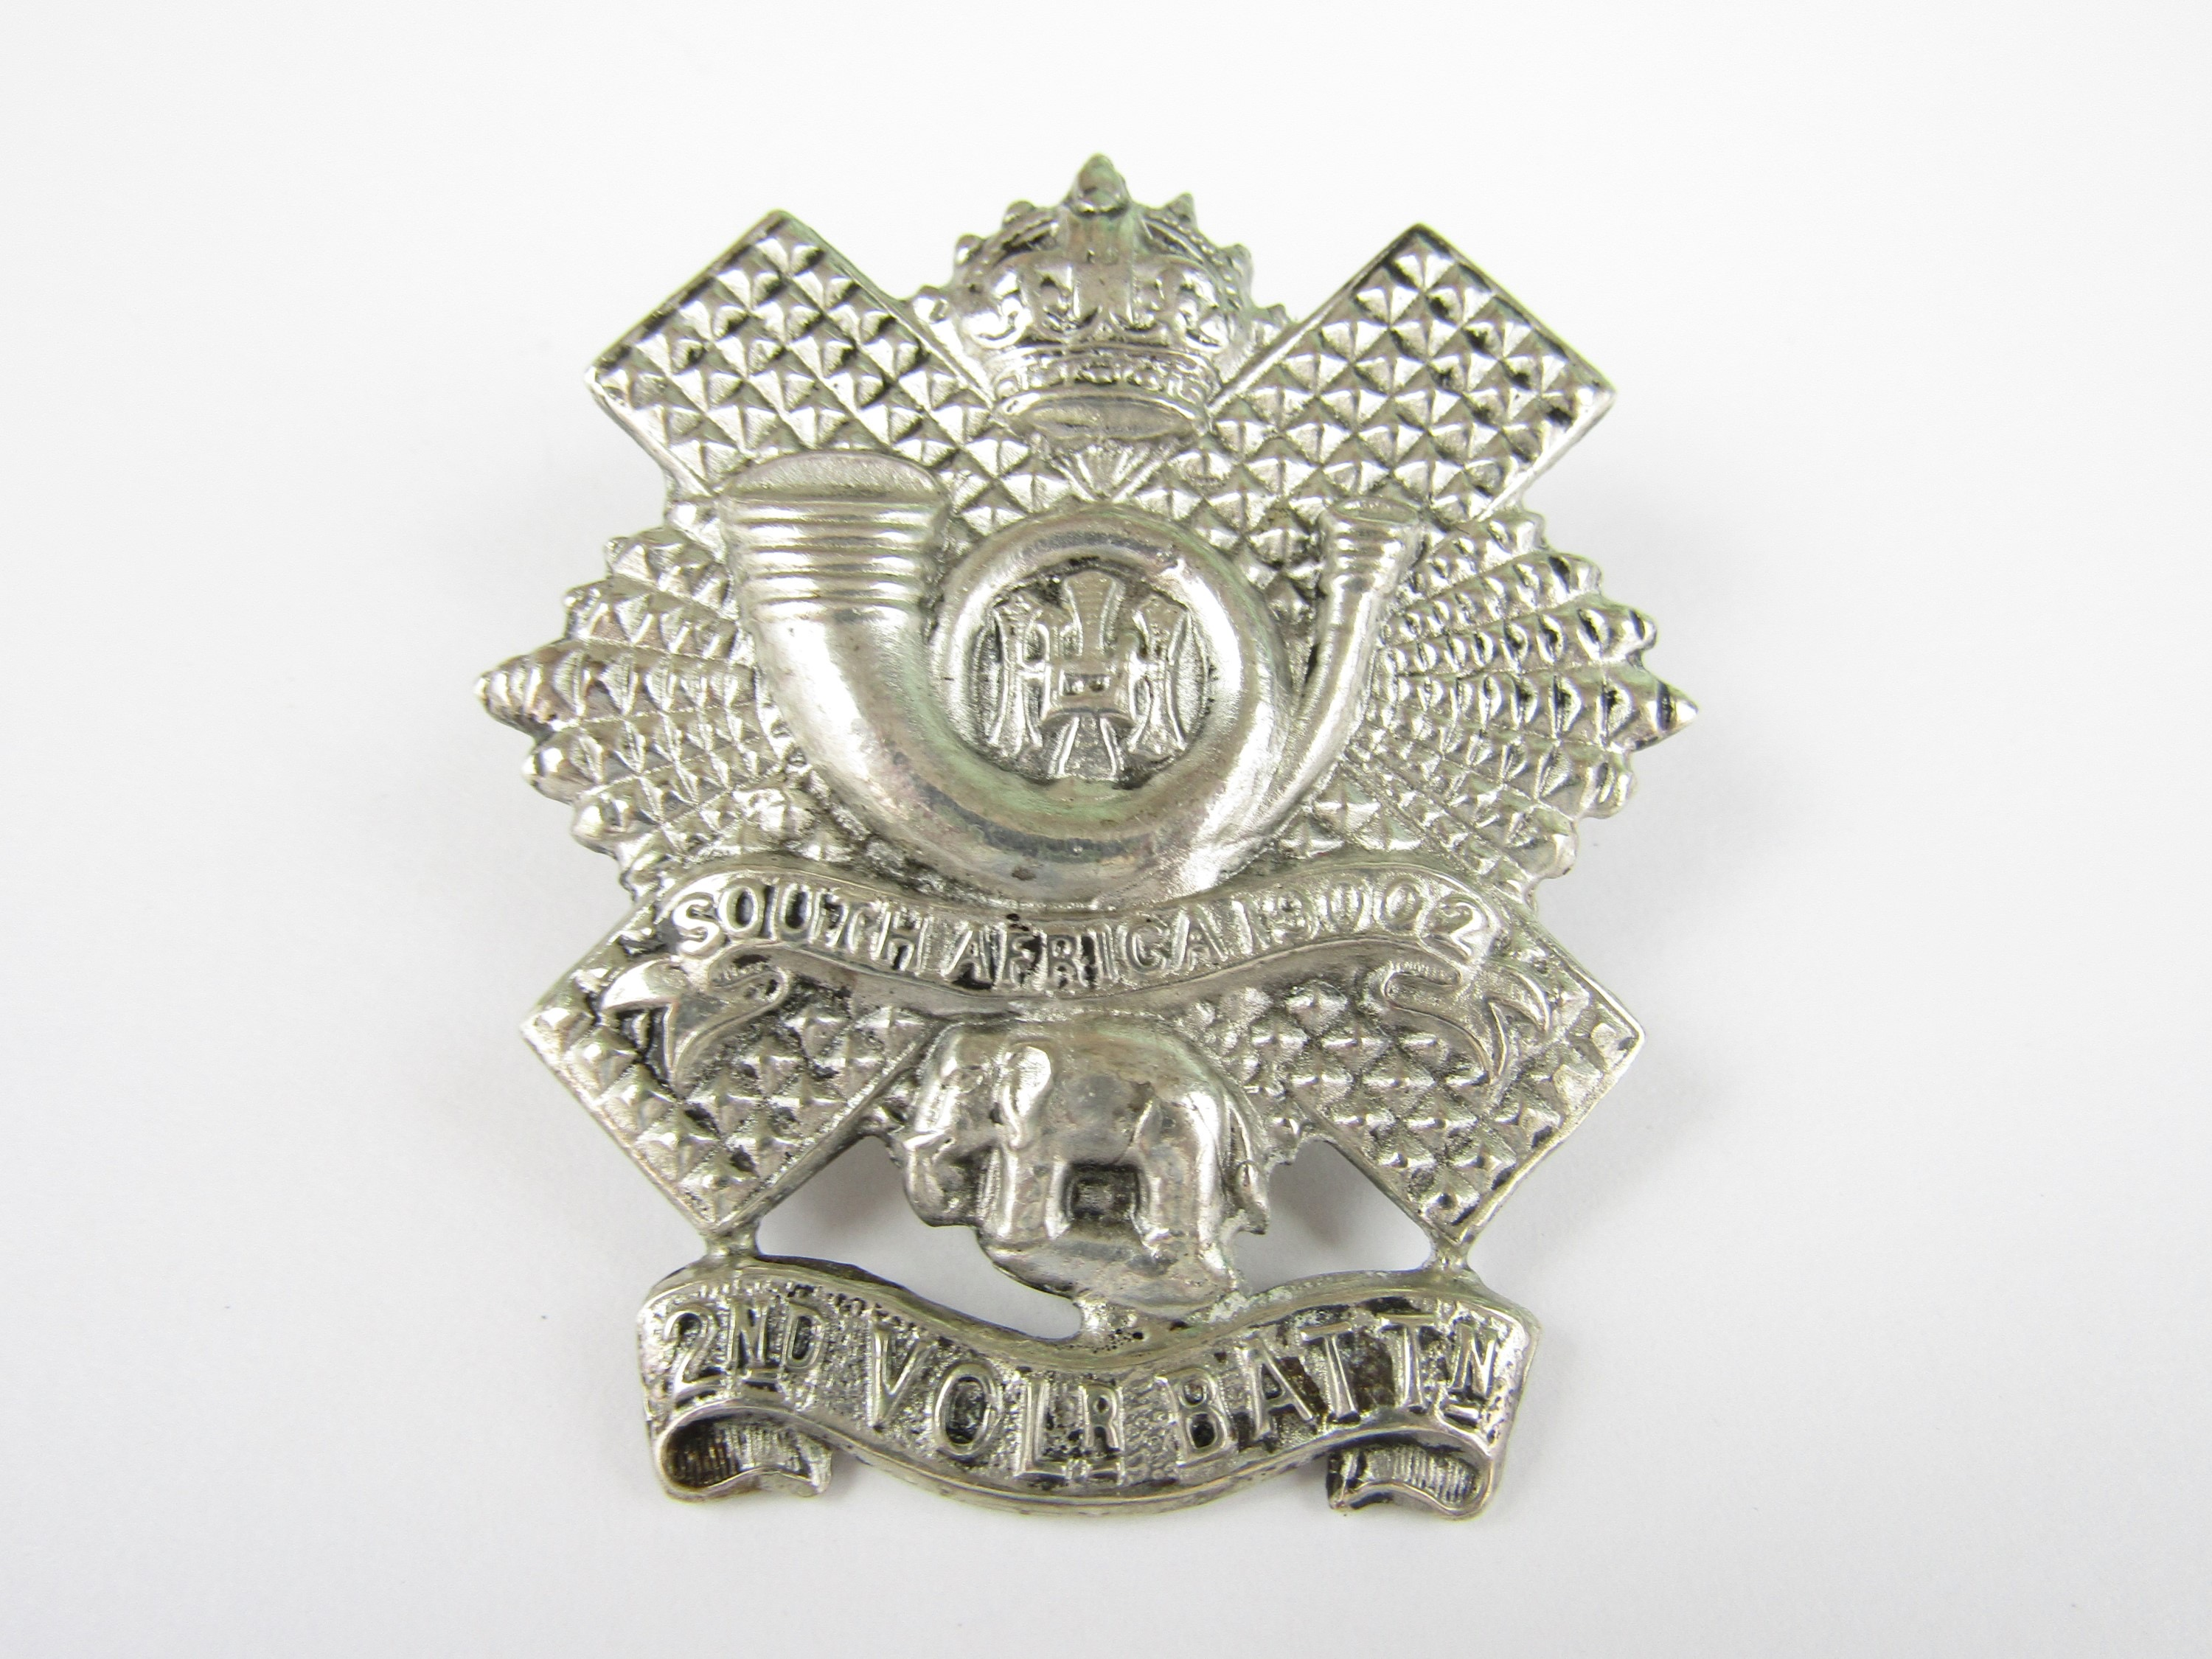 Lot 28 - A 2nd Volunteer Battalion HLI piper's or officer's cap badge, stamped SILVER and bearing the